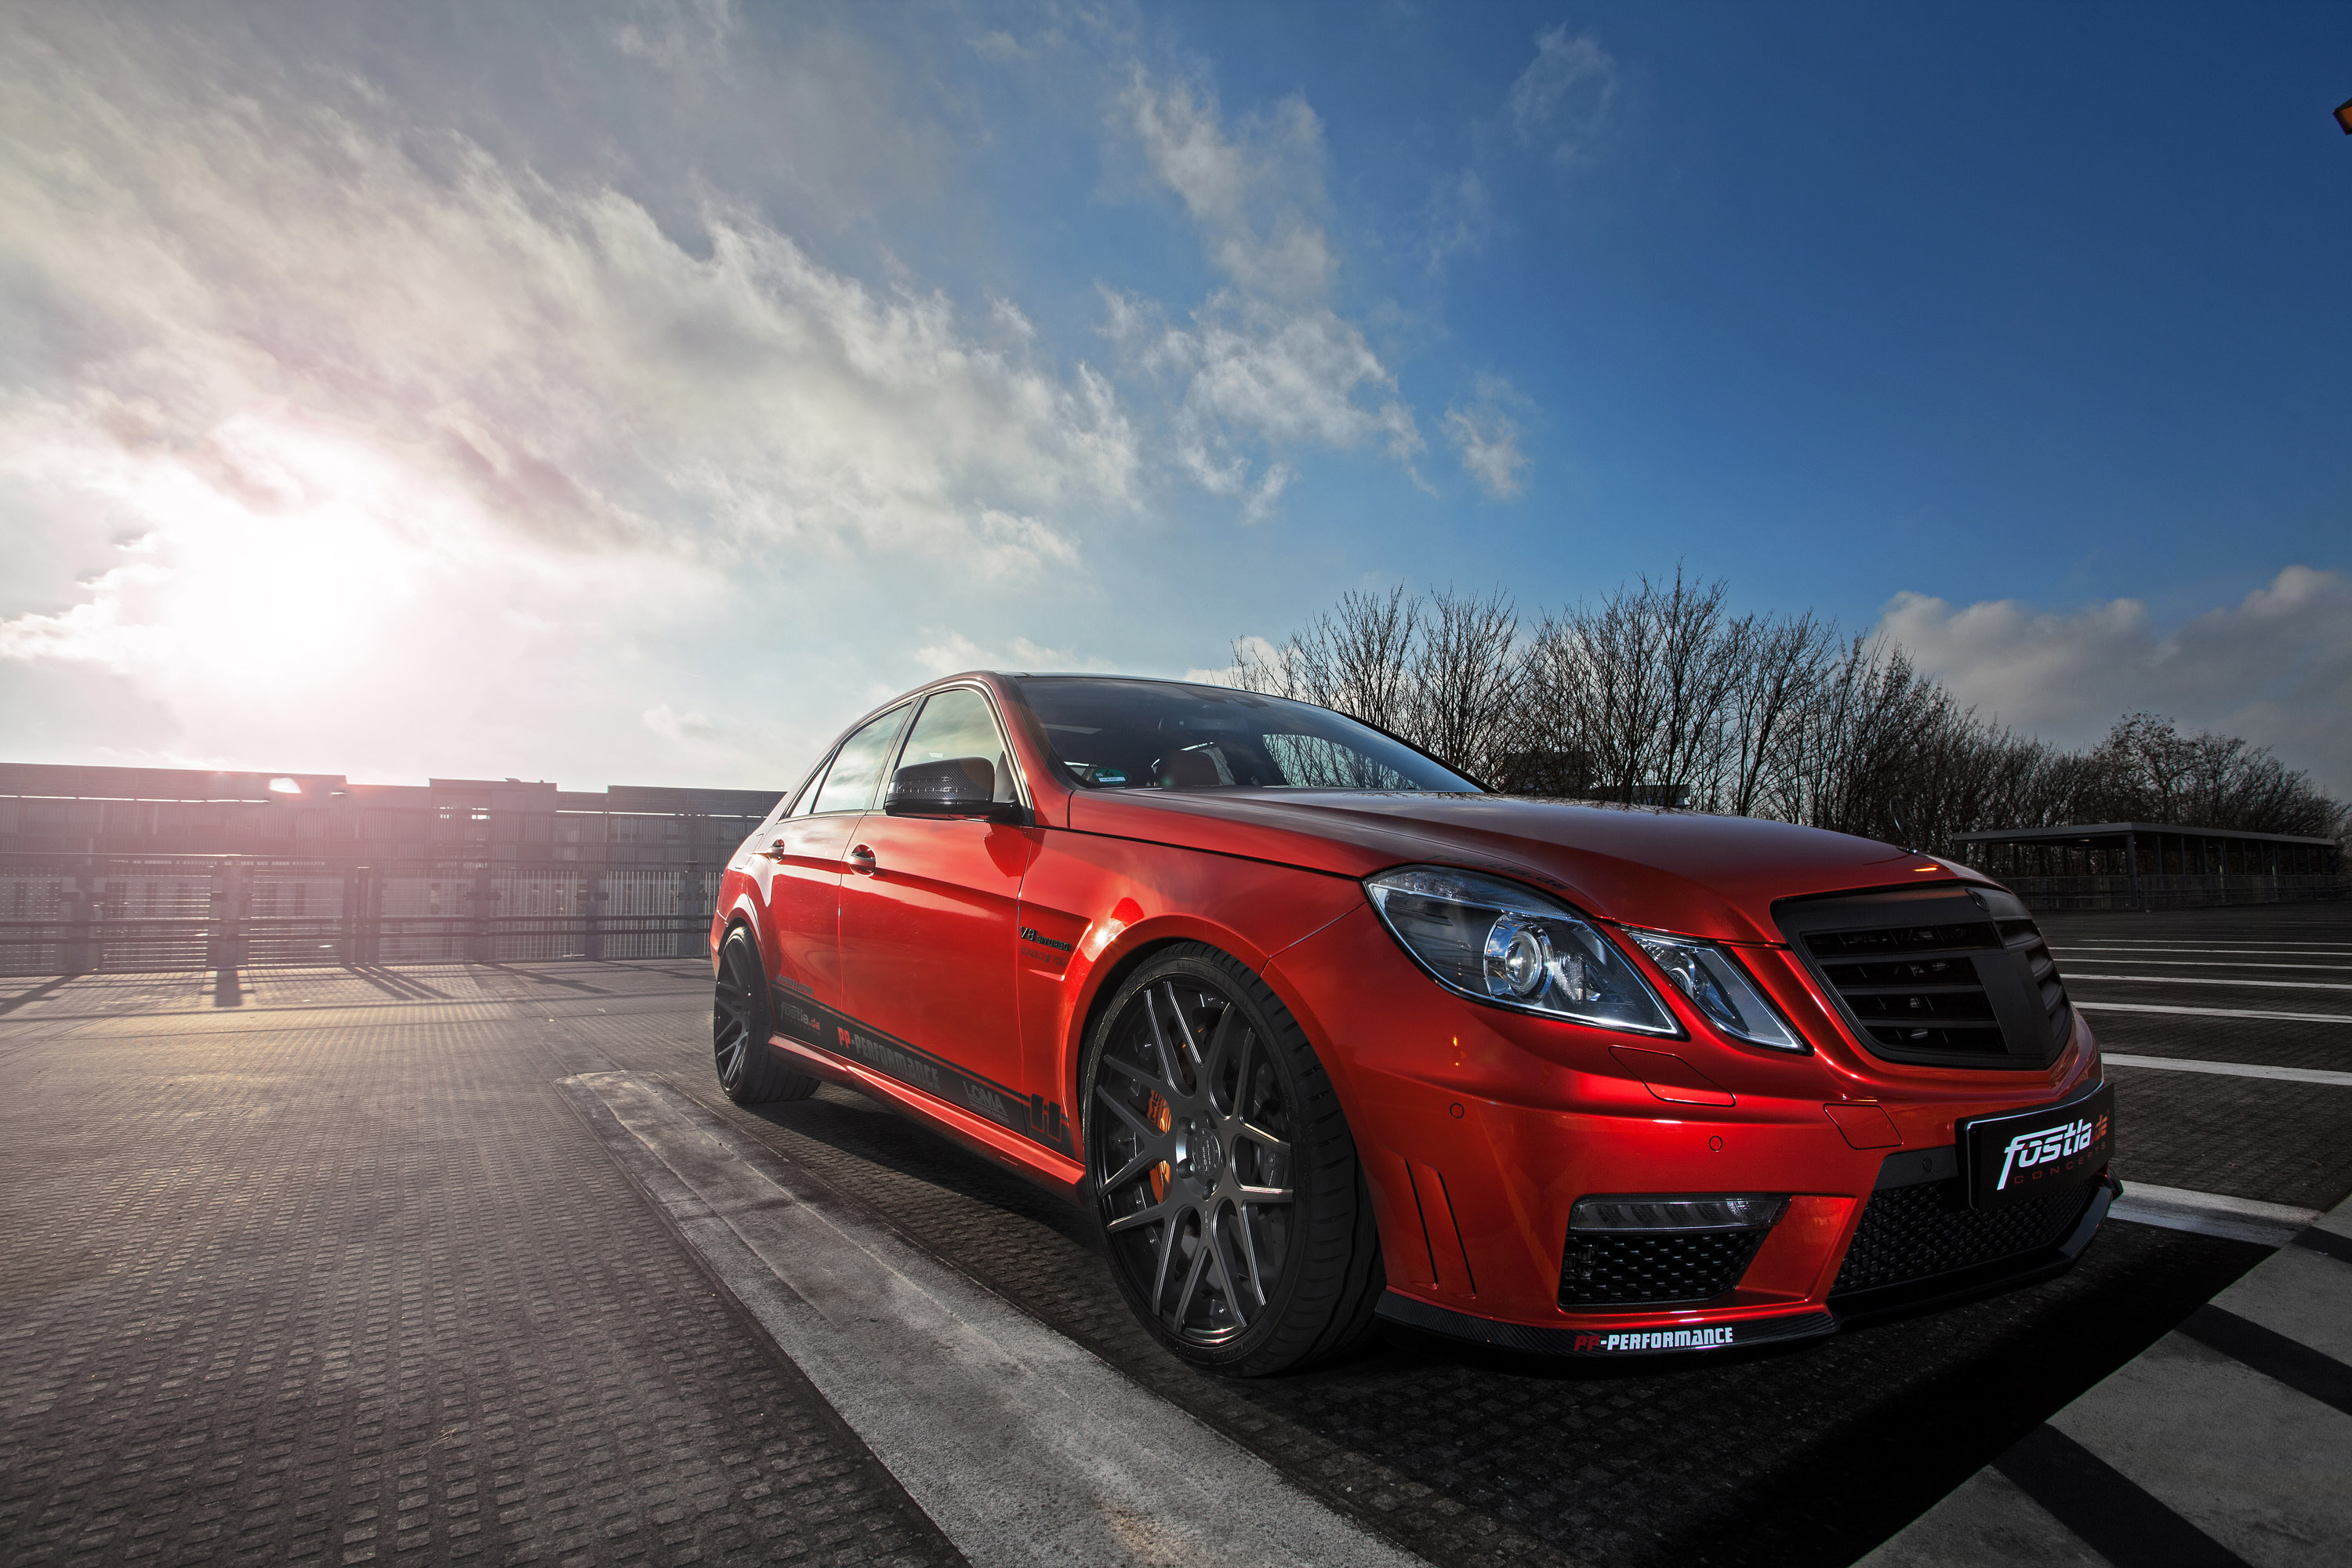 Mercedes benz e 63 amg w212 wows with 720 wild horses for Mercedes benz e amg